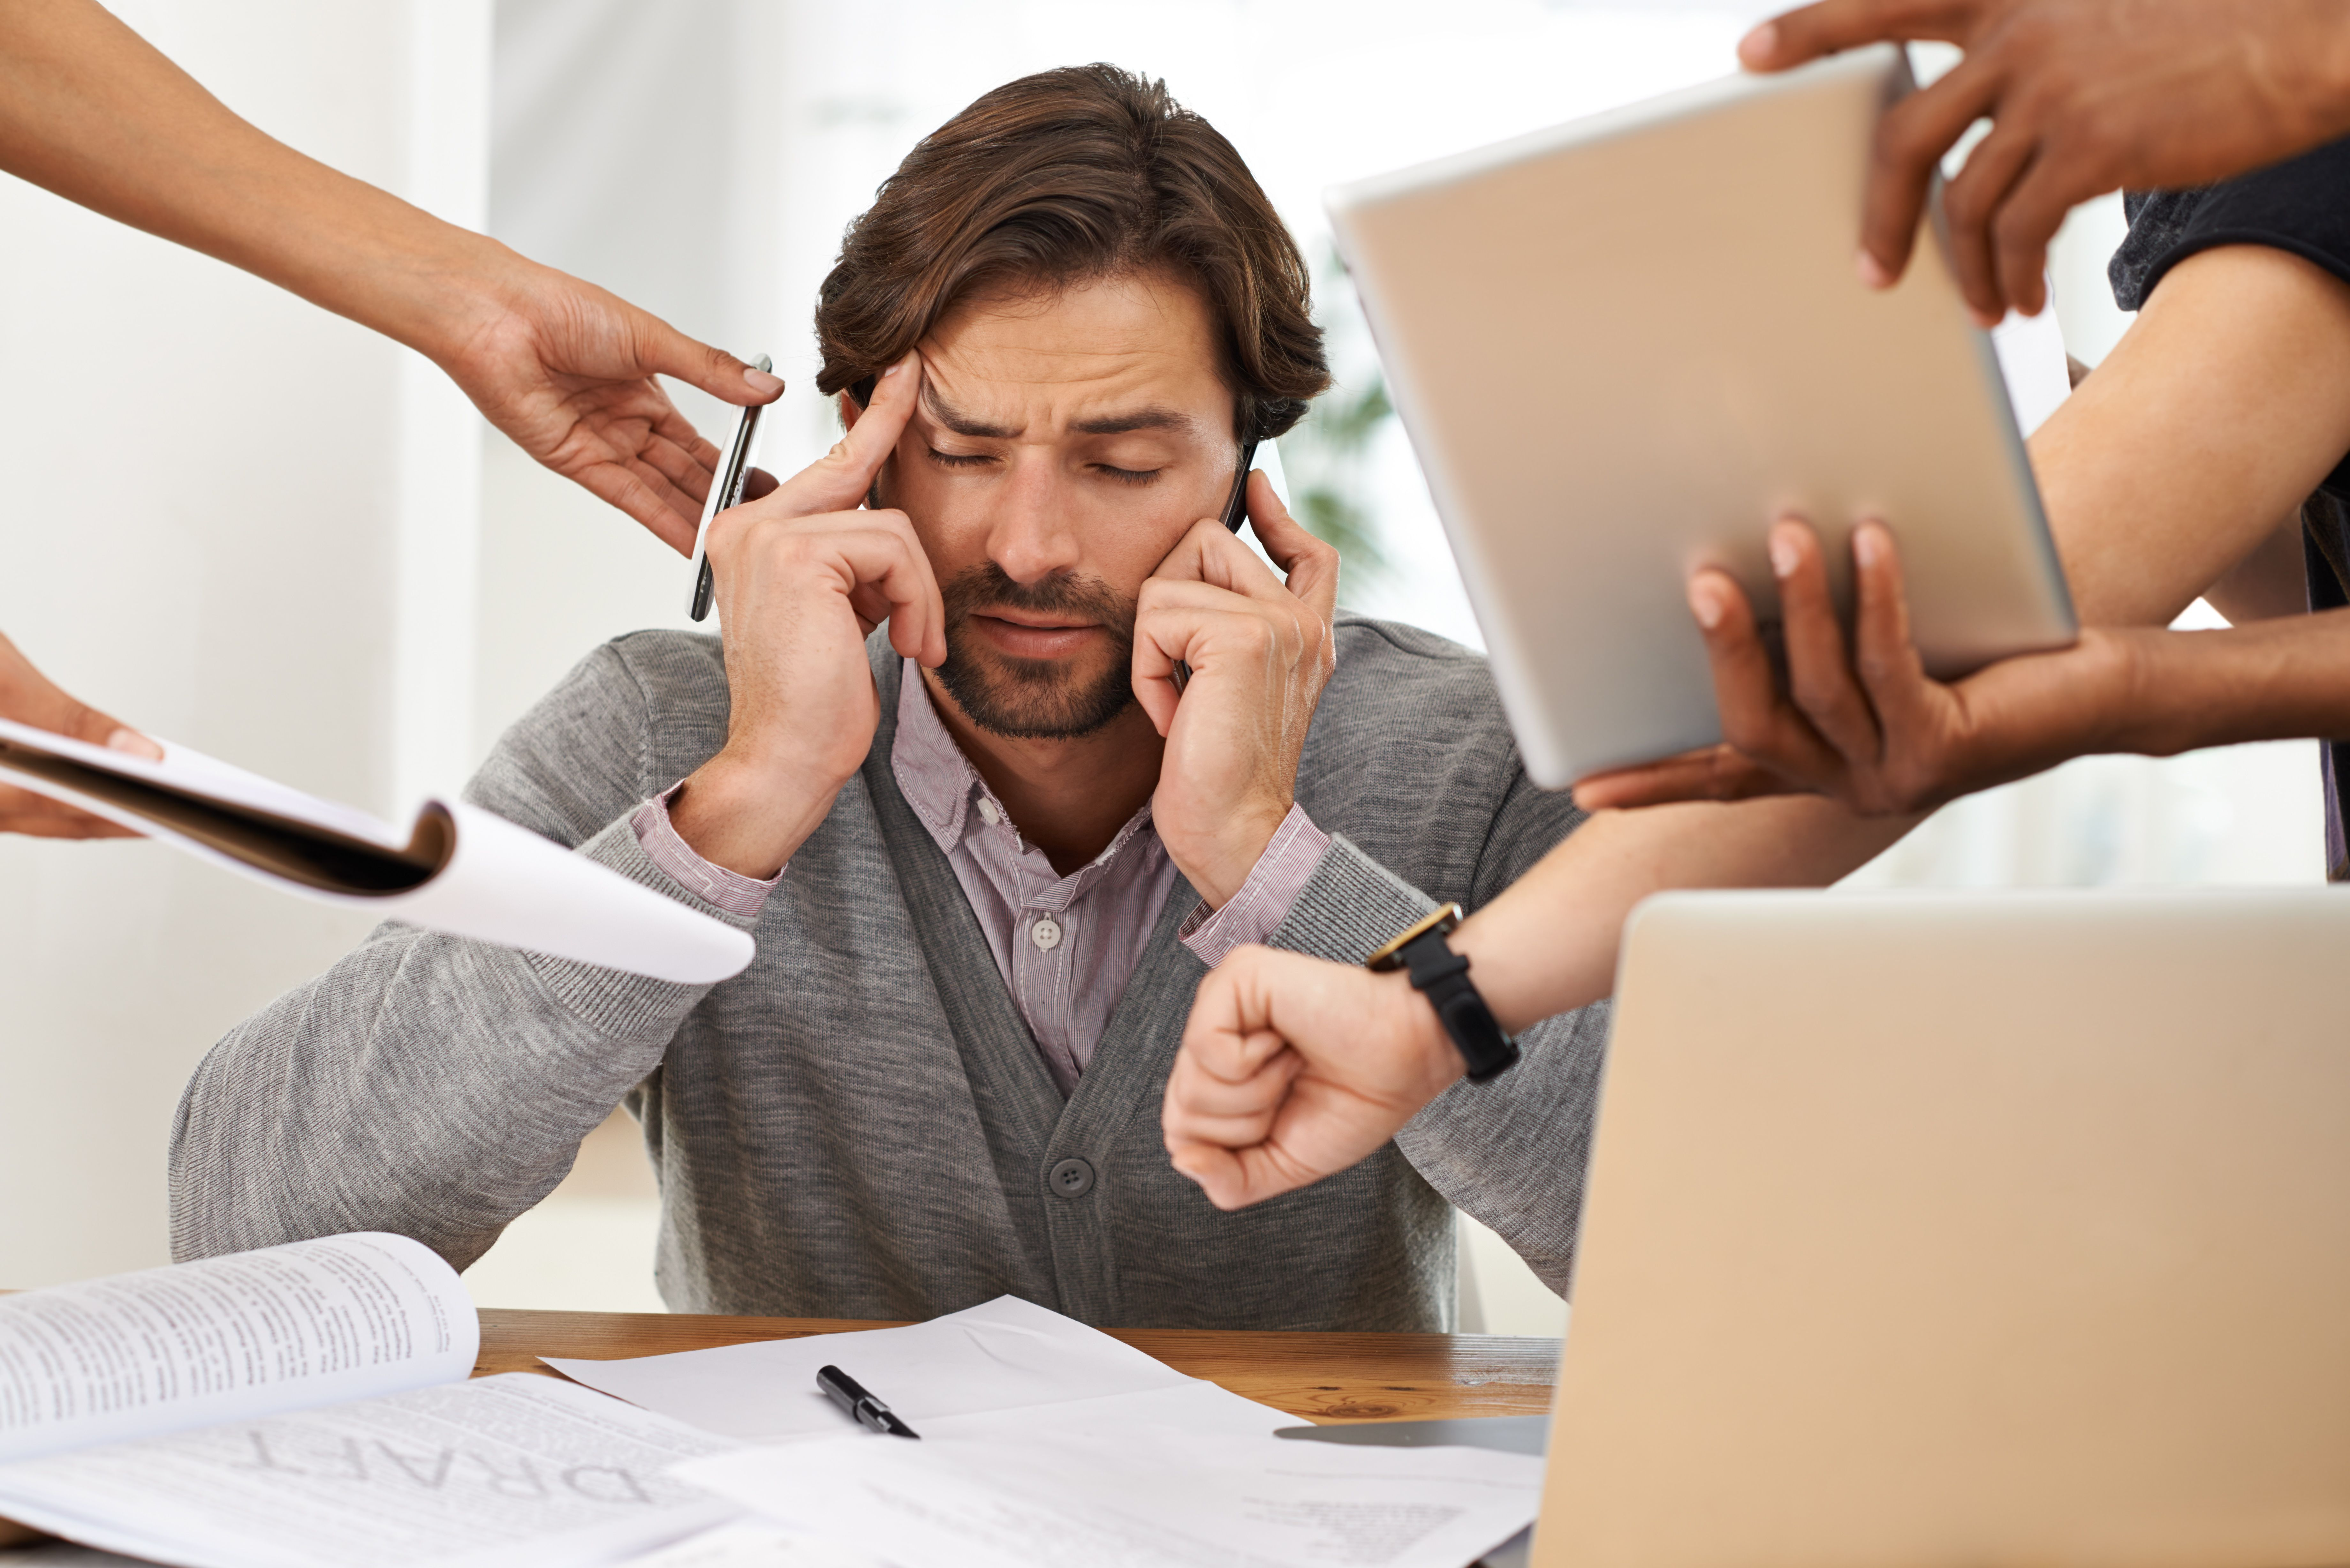 Man in an office with many things being shoved in his face